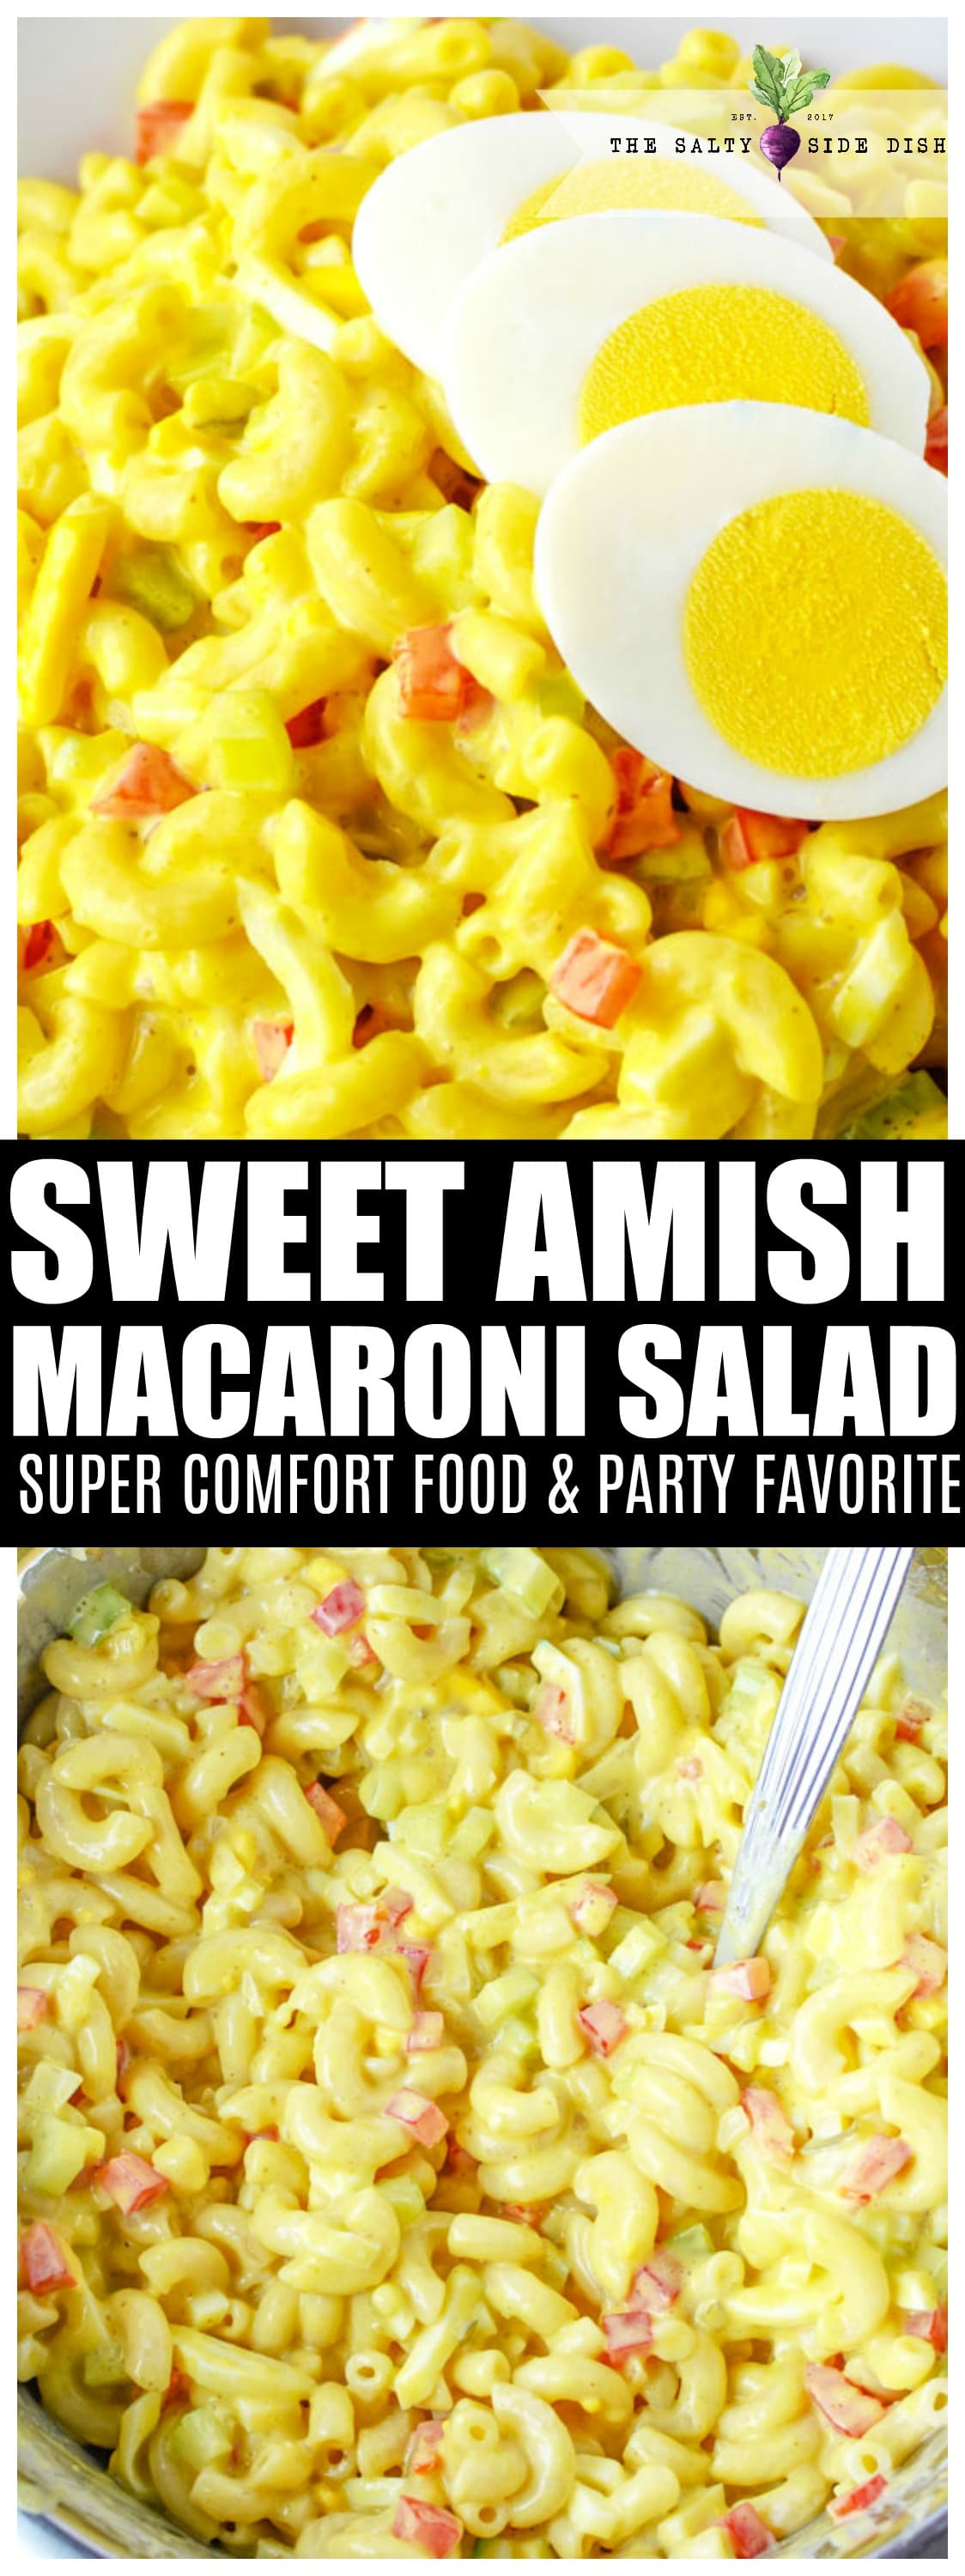 Amish Macaroni Salad | Sweet Macaroni Salad that is the BEST cold dish recipe you will find #sidedish #macaronisalad #amish #recipe #food #homemade #homecooking #holidayfood #bbq